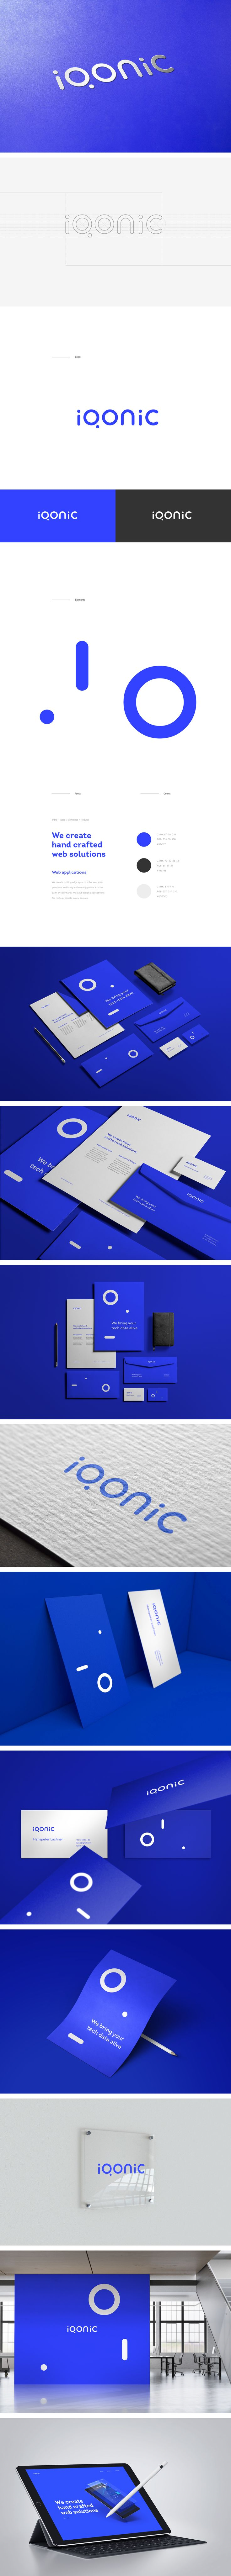 """Check out this @Behance project: """"Iqonic - Logo / Identity"""" https://www.behance.net/gallery/56765407/Iqonic-Logo-Identity"""